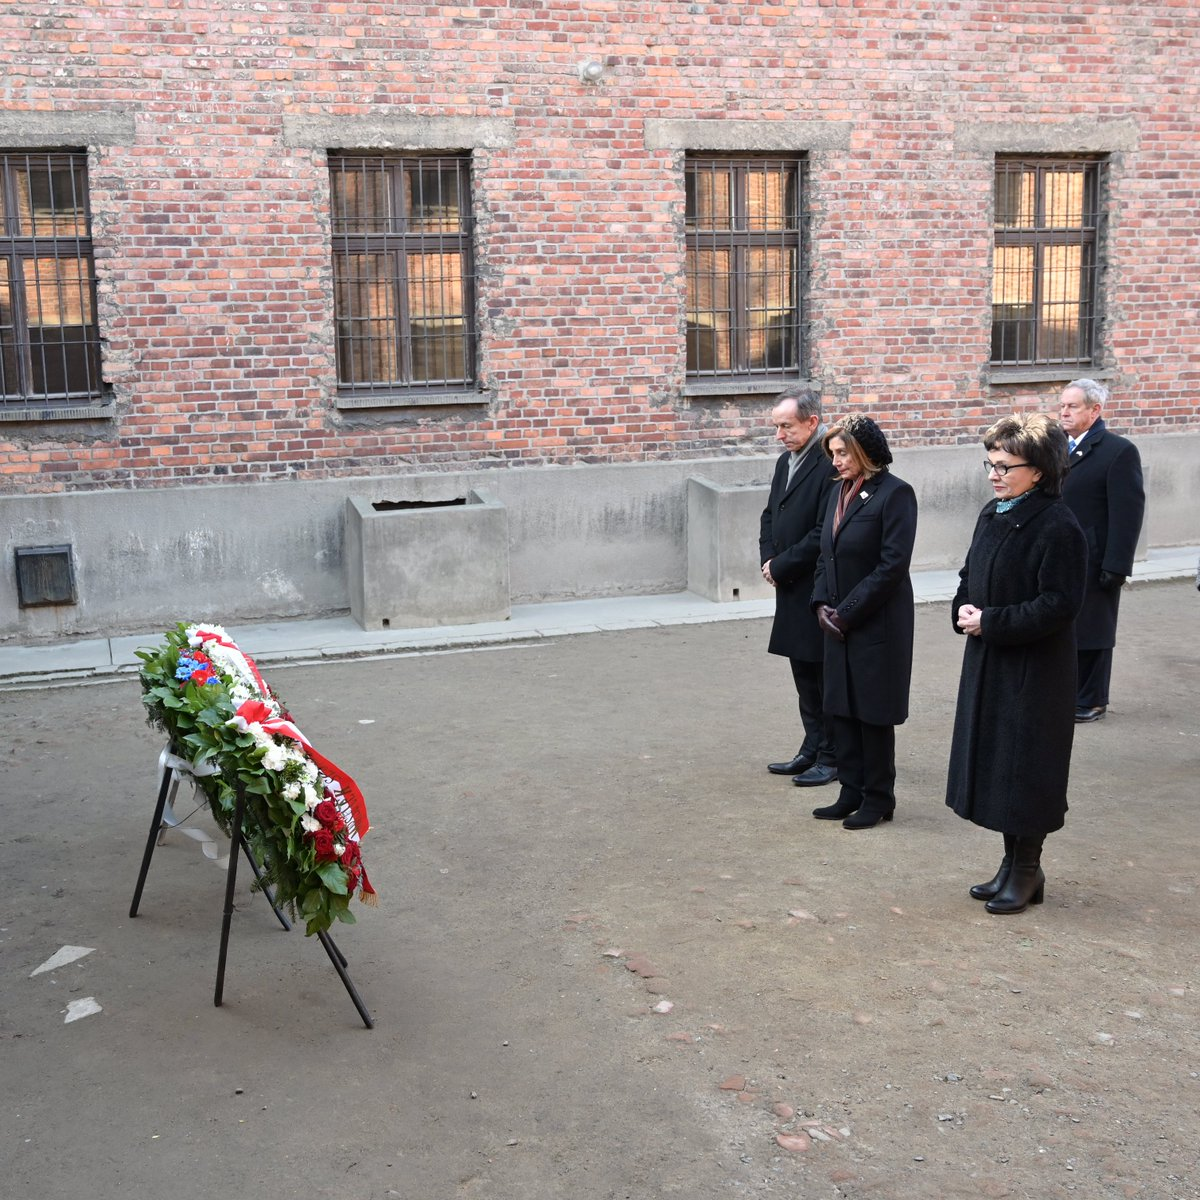 "The Marshal of the Sejm and the Speaker of the House of Representatives in #Auschwitz-Birkenau. Joint tribute to the victims of the Nazi crime.  ""Silence cries out with the voices of millions of those murdered""   →http://sejm.gov.pl/Sejm9.nsf/komunikat.xsp?documentId=014A87E267EB1069C12584F60055B56E …  #Auschwitz75 #WeRemember #NeverAgainpic.twitter.com/HISEILe1N7"